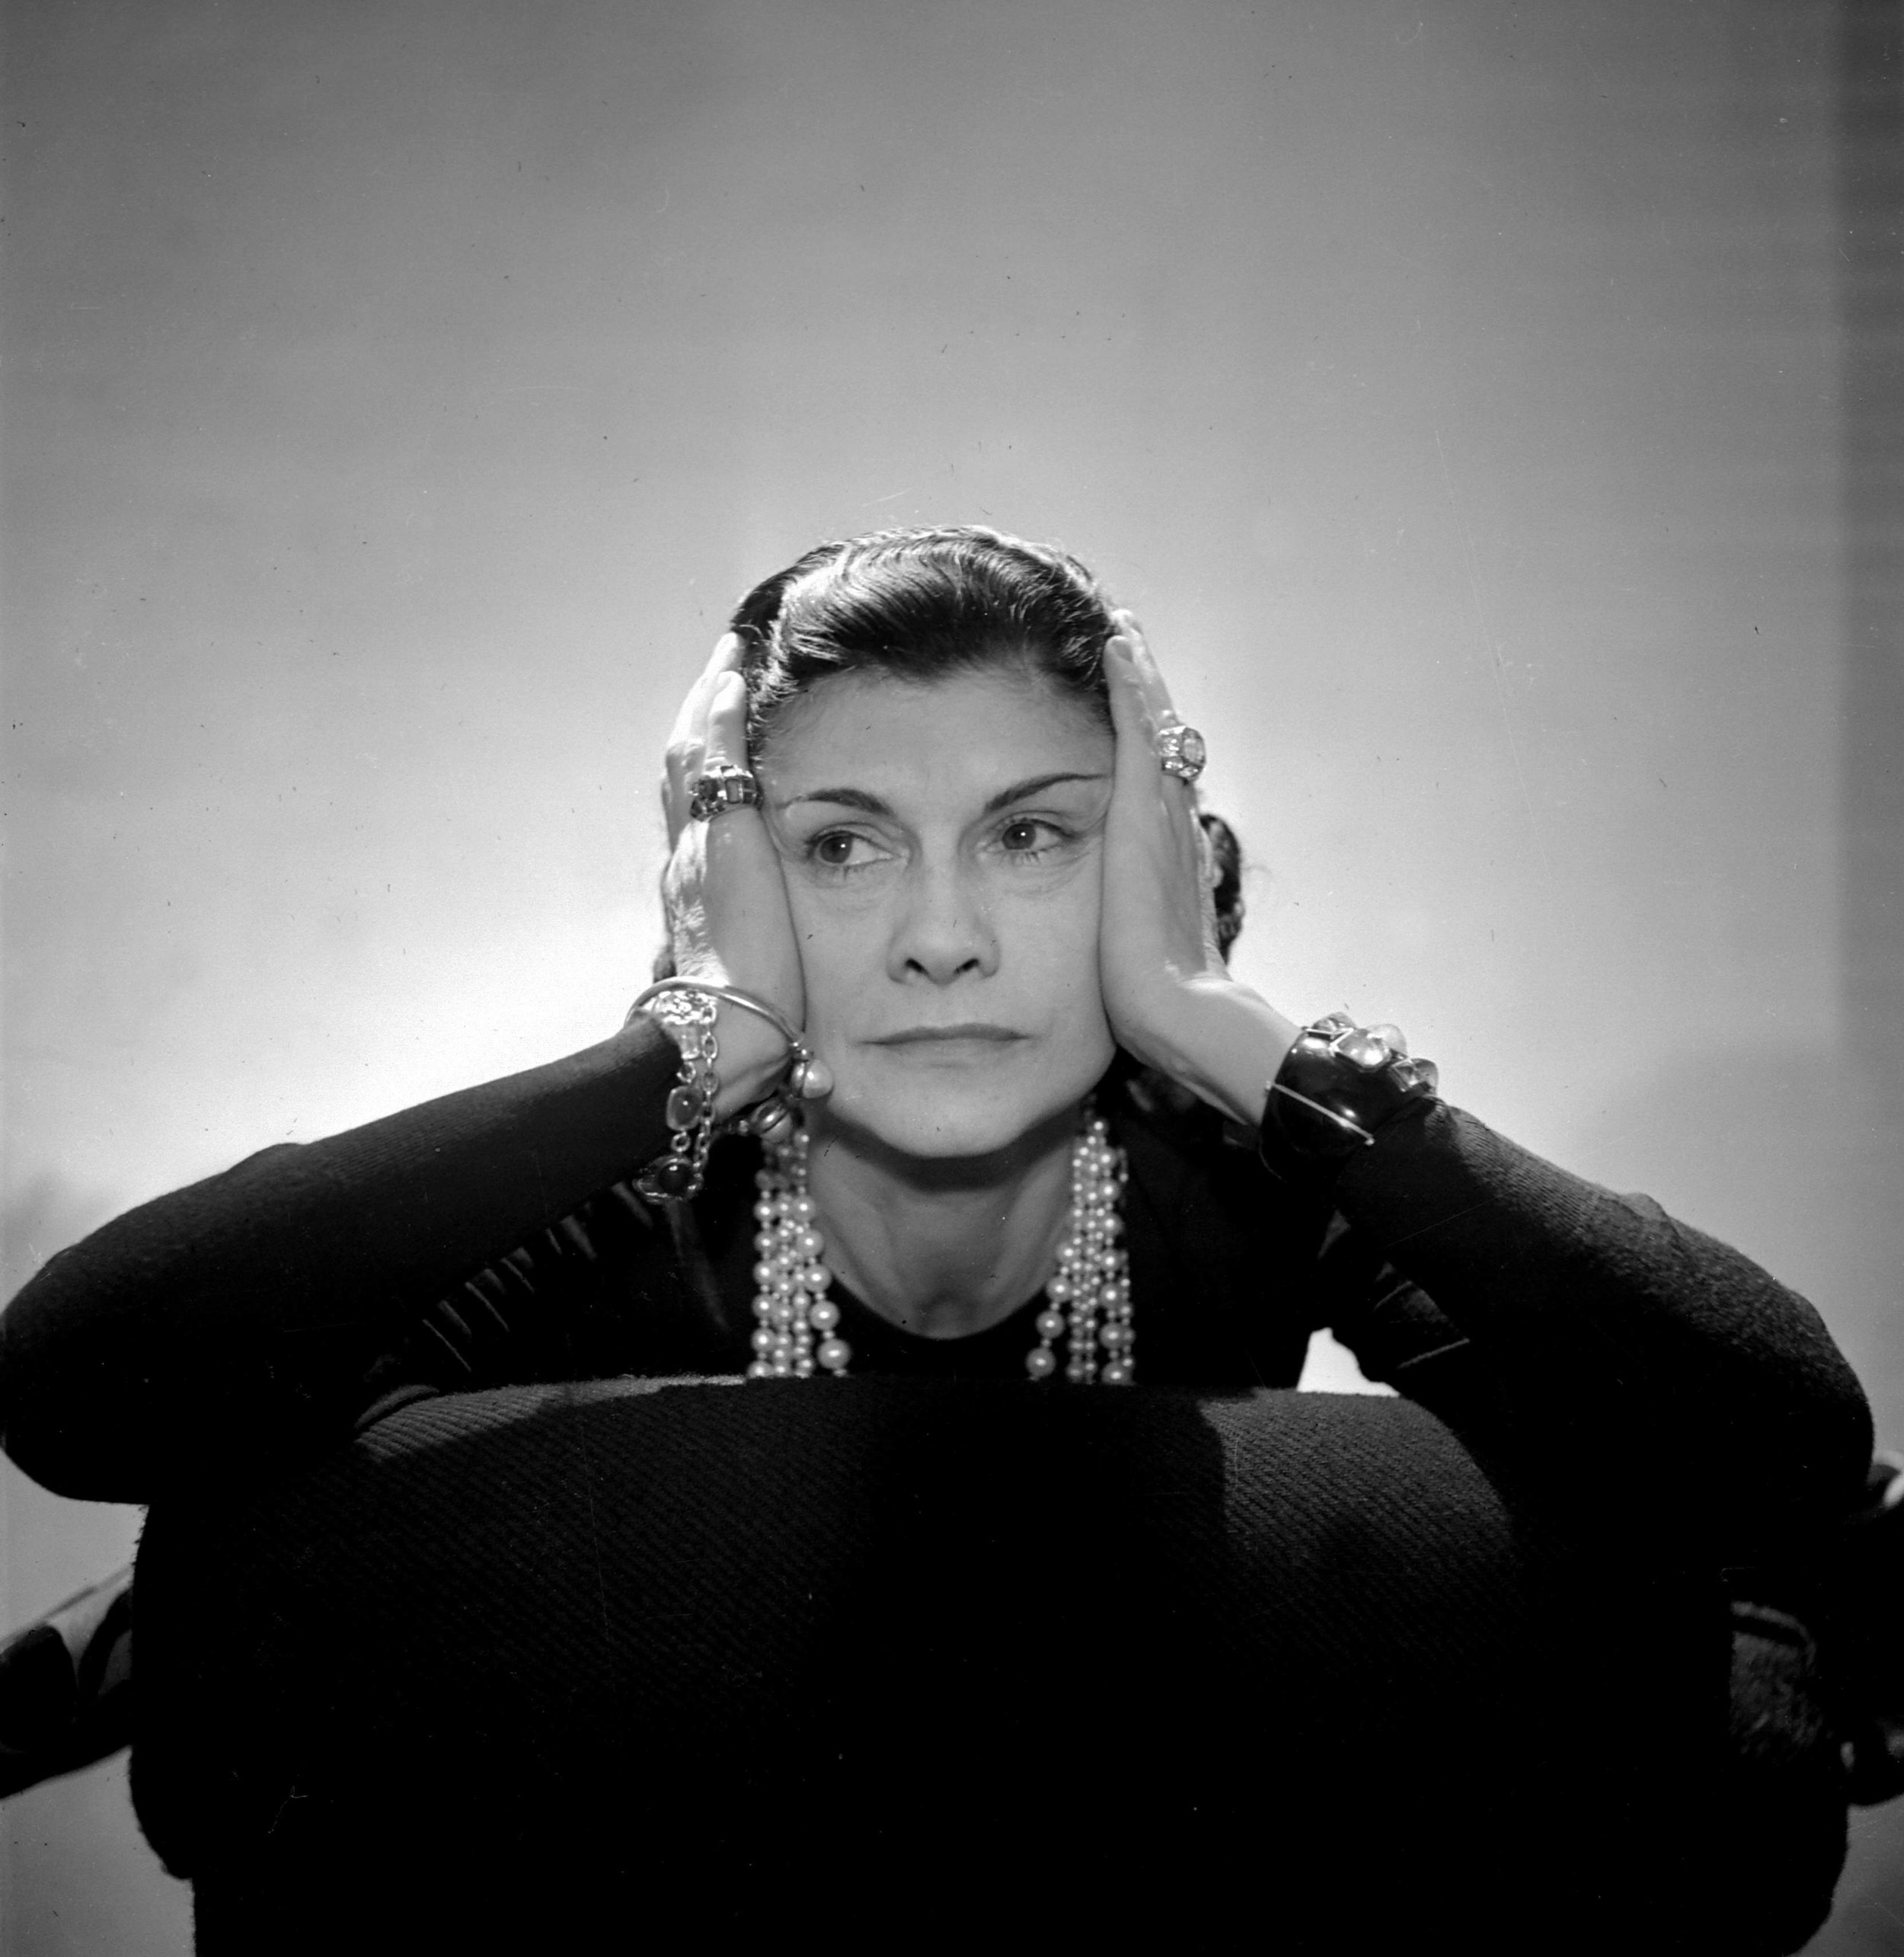 FRANCE - CIRCA 1936: Coco Chanel, French couturier. Paris, 1936. LIP-6958-108. (Photo by Lipnitzki/Roger Viollet/Getty Images)